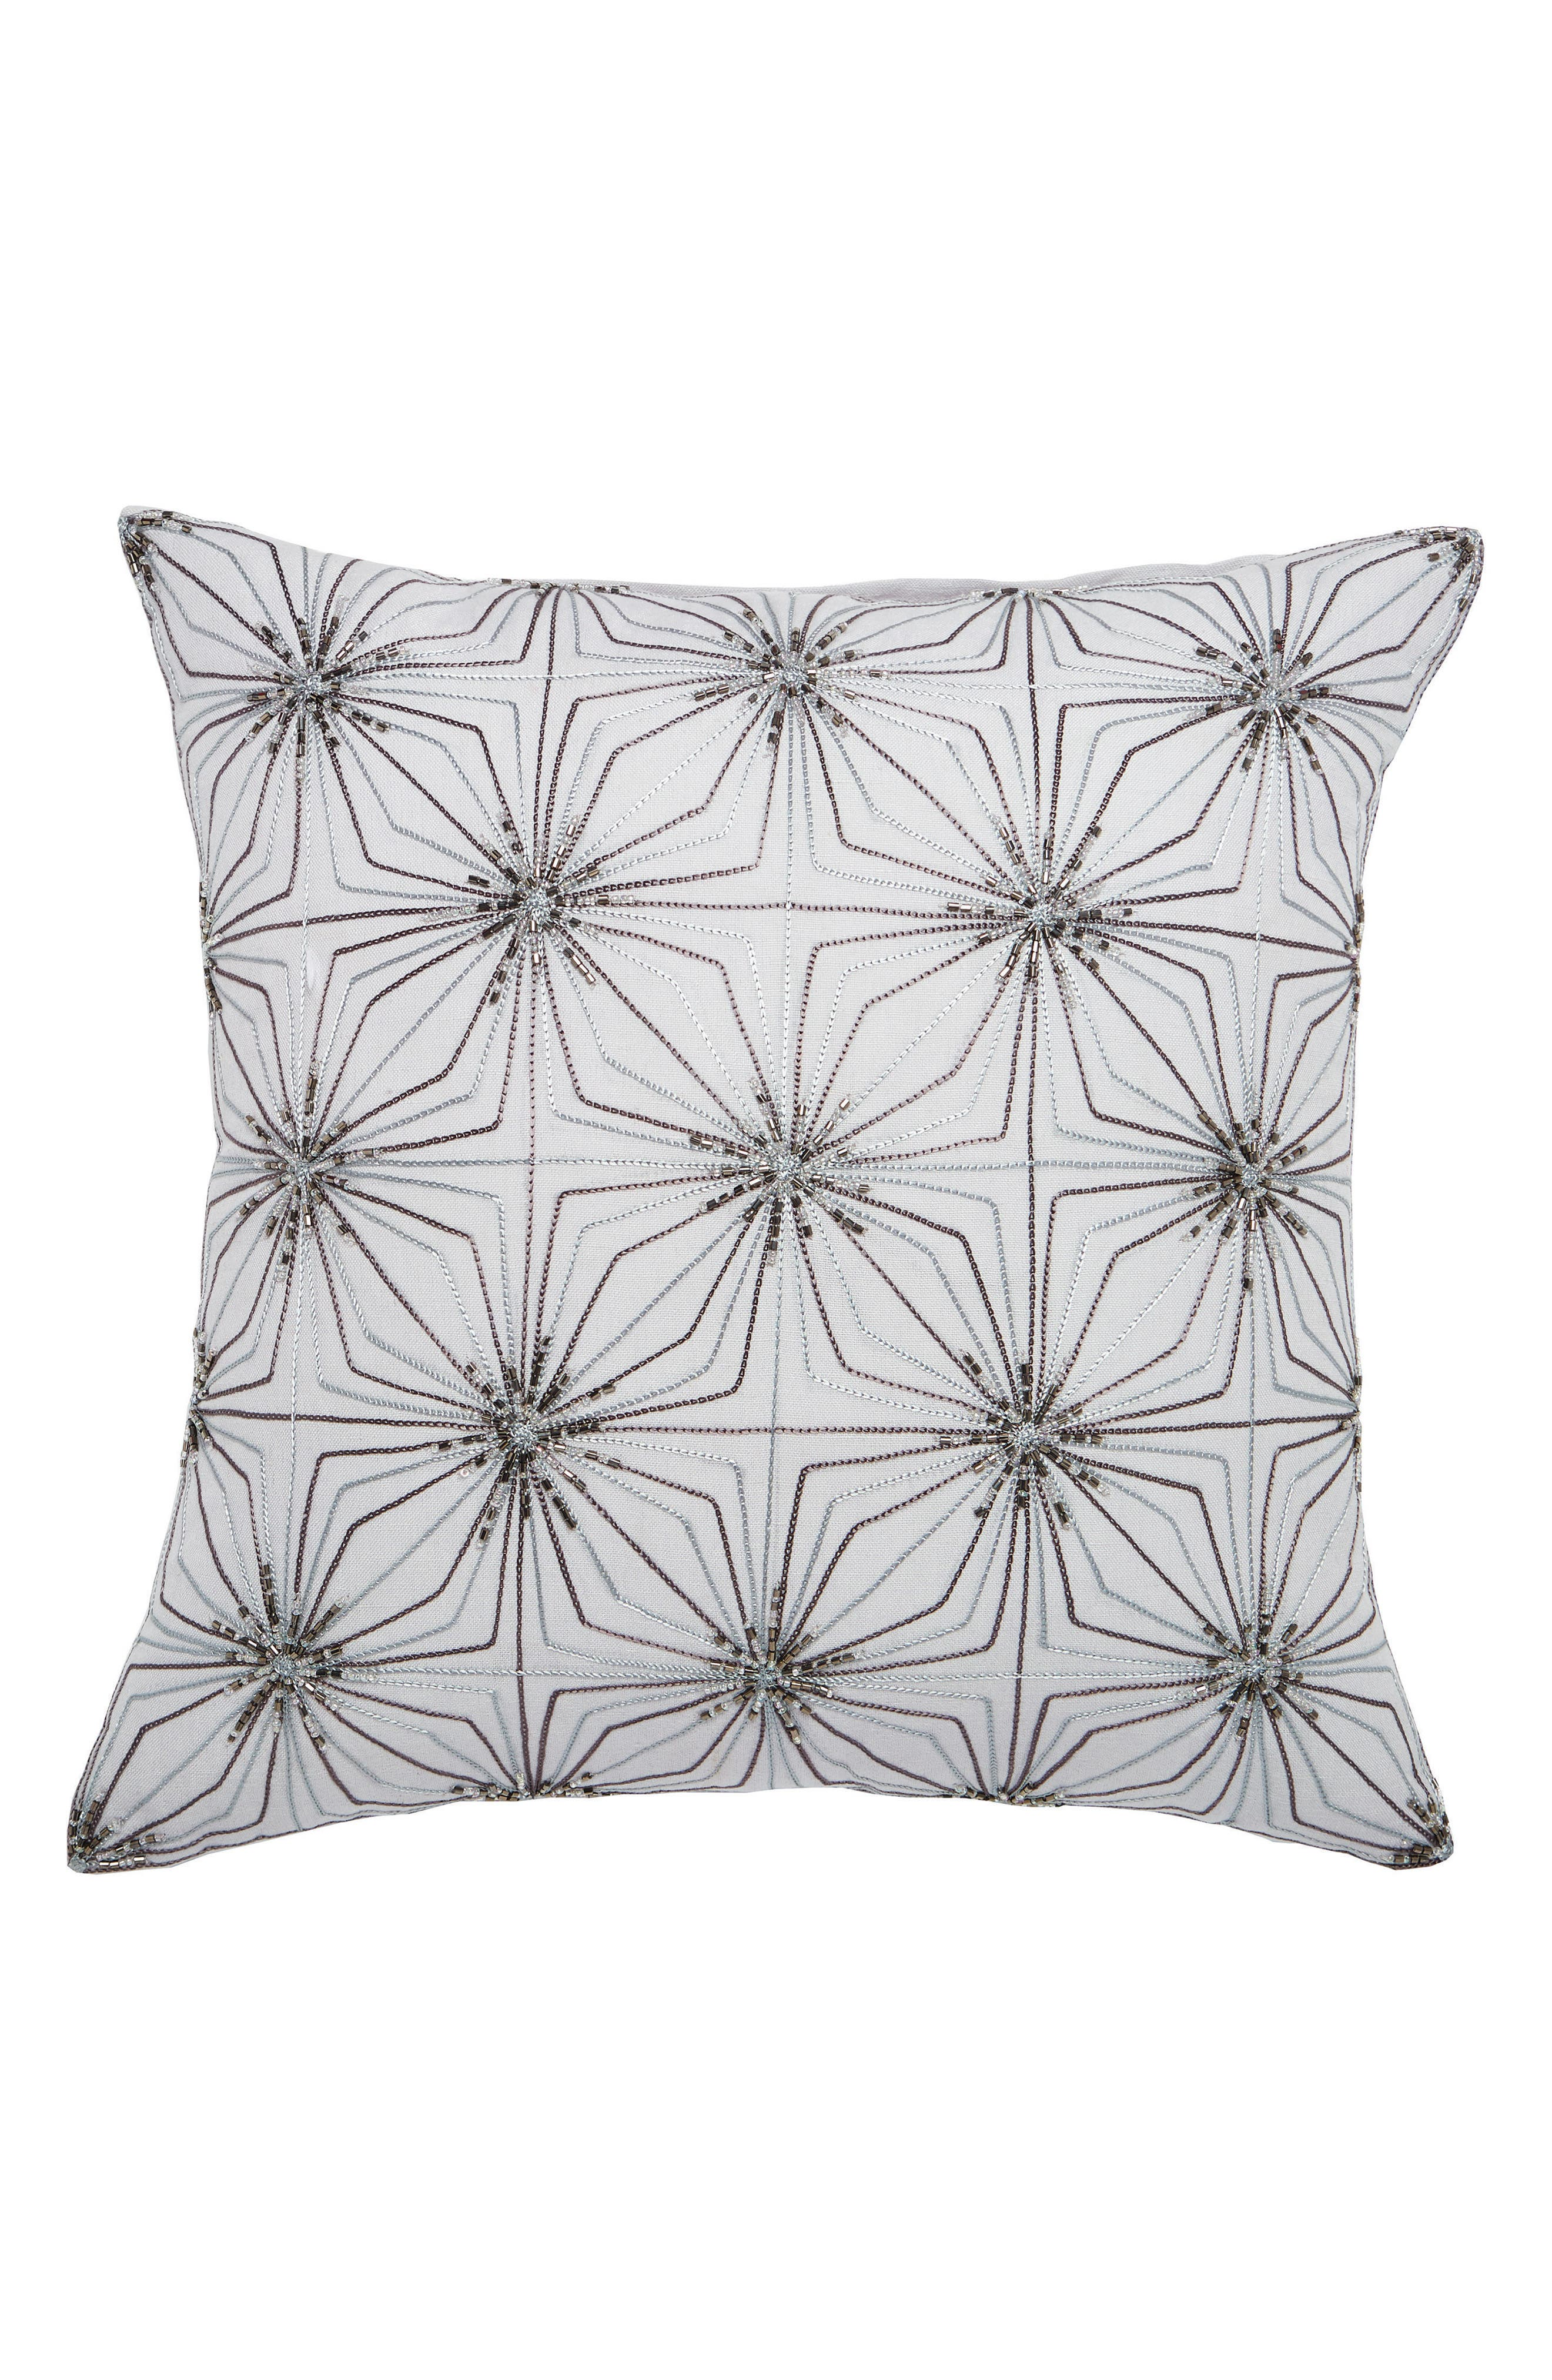 Alternate Image 1 Selected - Ted Baker London Beaded Pillow